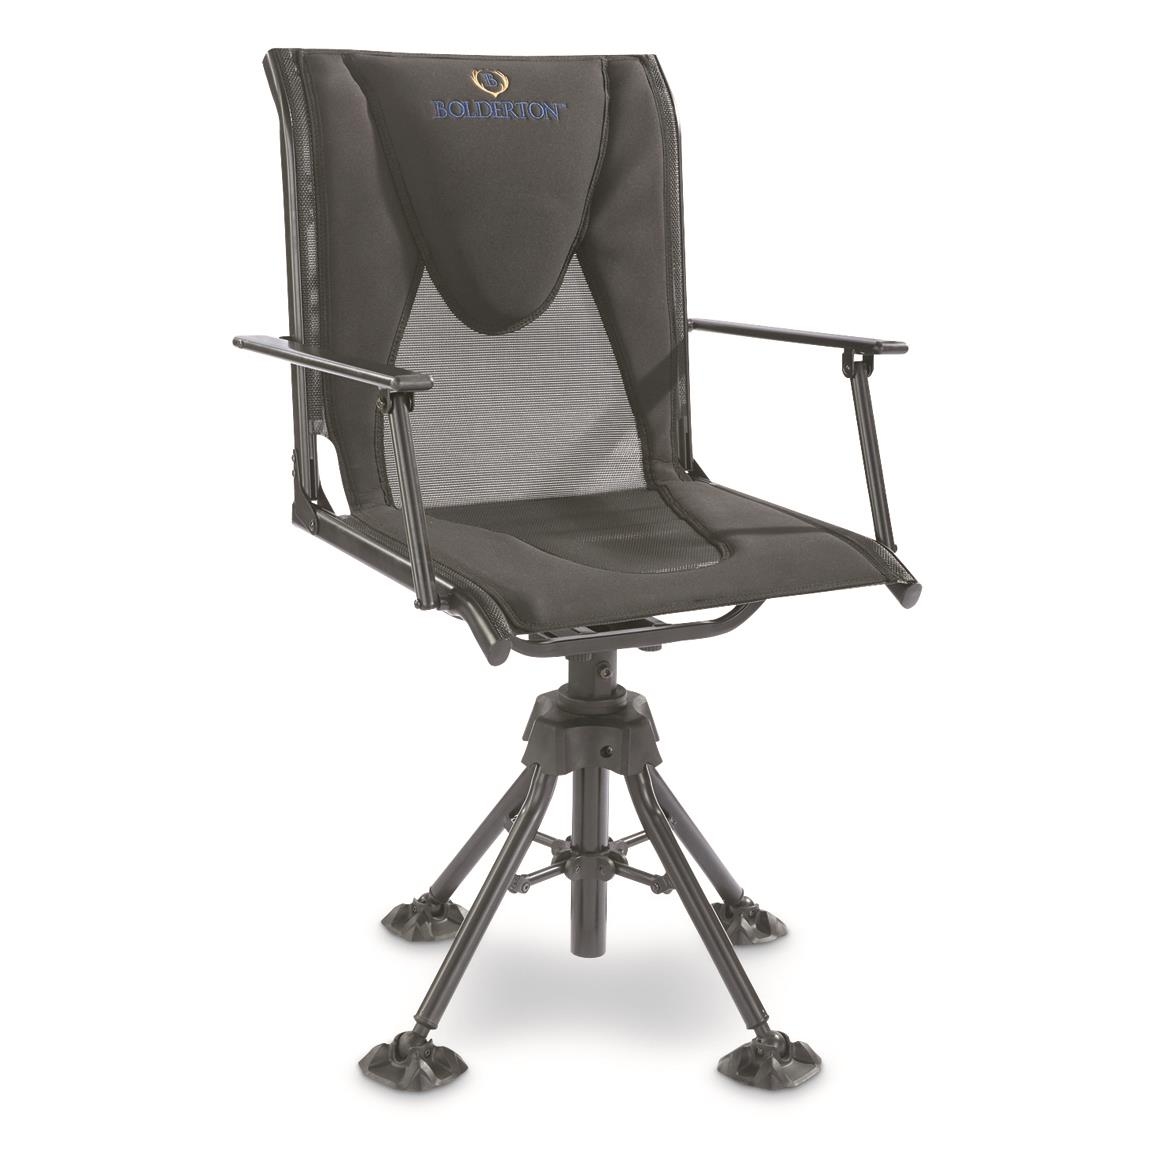 hunting seats and chairs chair stools with arms take a load off these 10 blind bolderton 360 comfort swivel